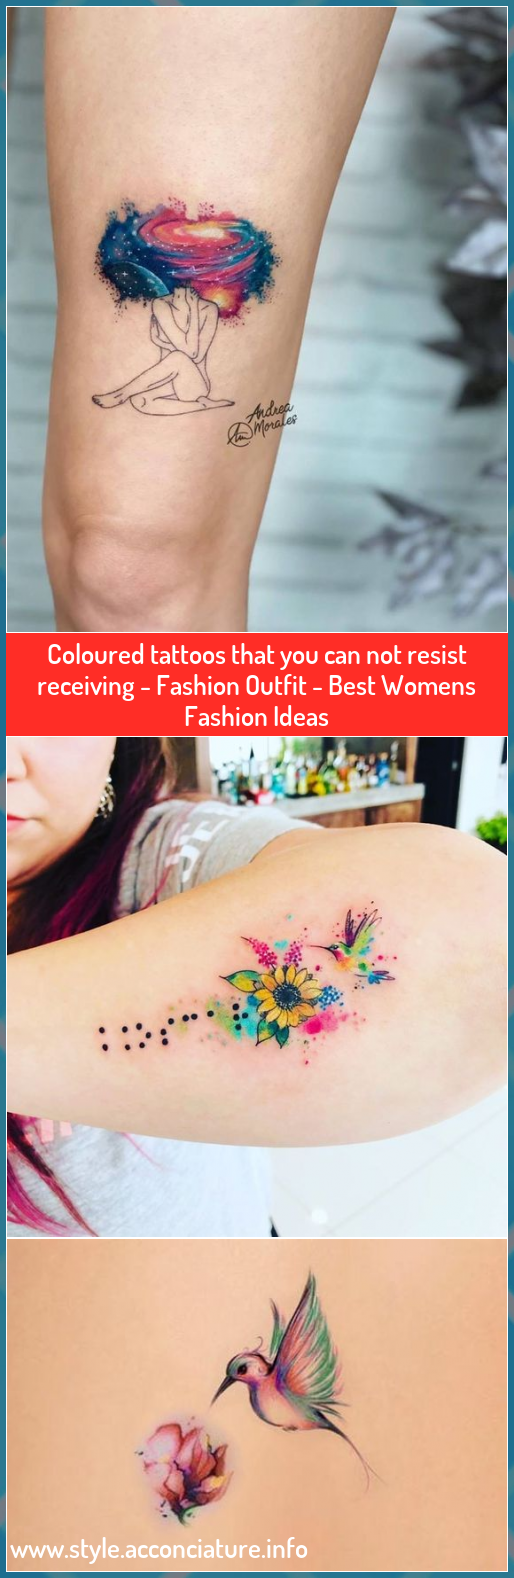 Coloured tattoos that you can not resist receiving - Fashion Outfit - Best Womens Fashion Ideas #Coloured #tattoos #that #you #can #not #resist #receiving #Fashion #Outfit #Best #Womens #Fashion #Ideas